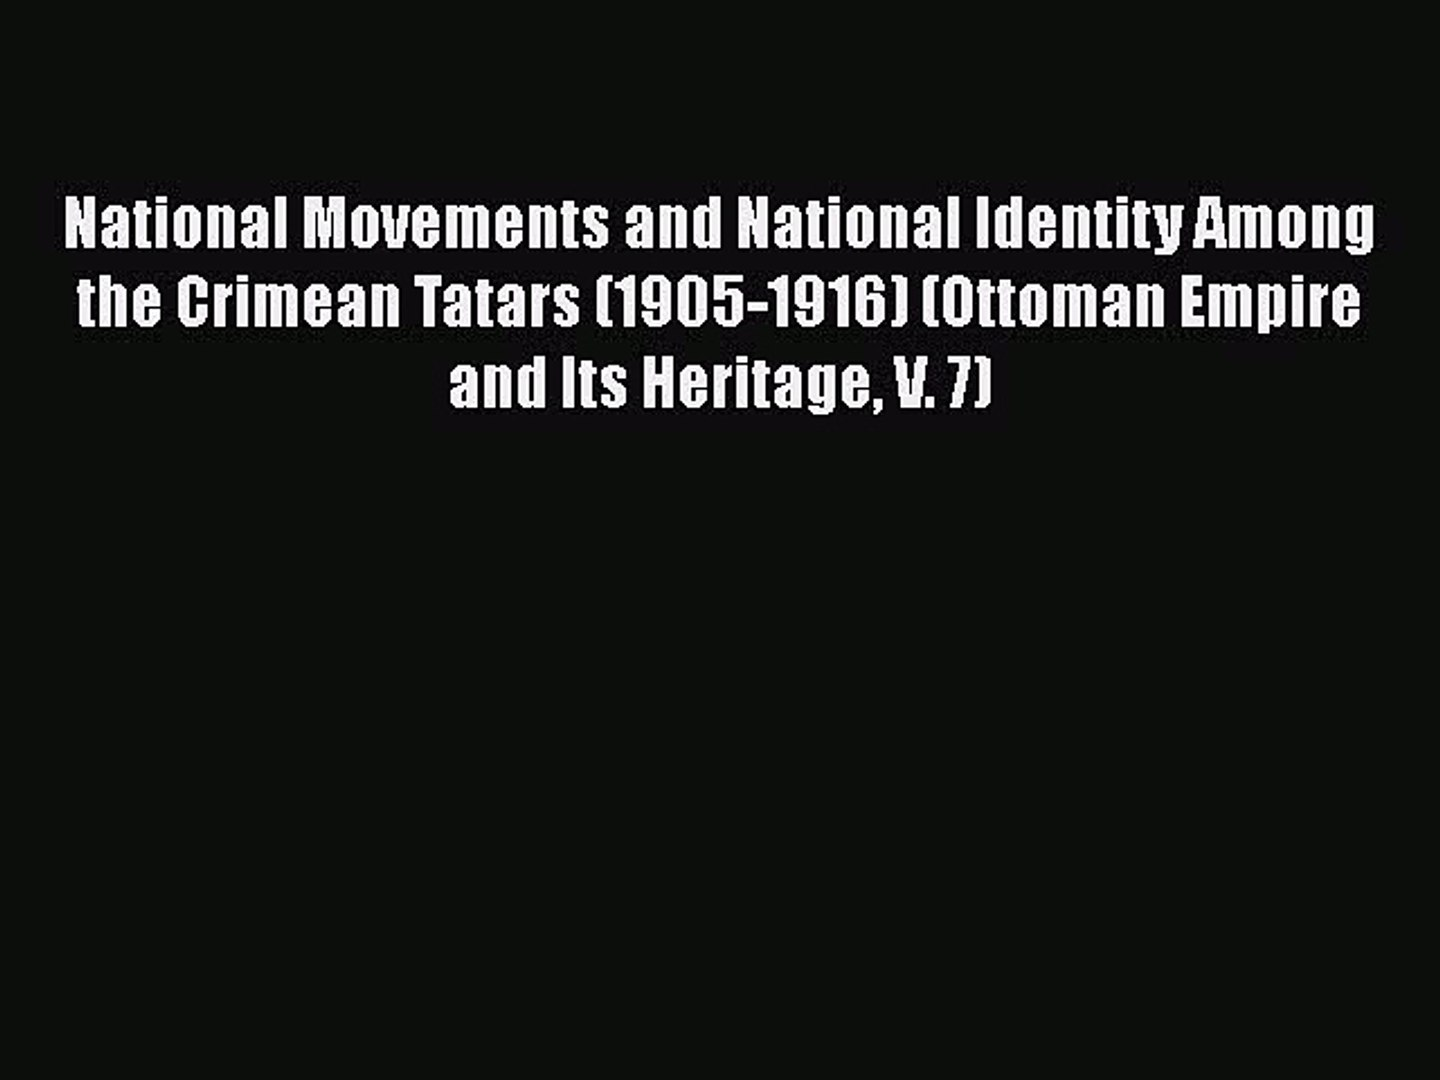 National Movements and National Identity Among the Crimean Tatars (1905-1916) (Ottoman Empire